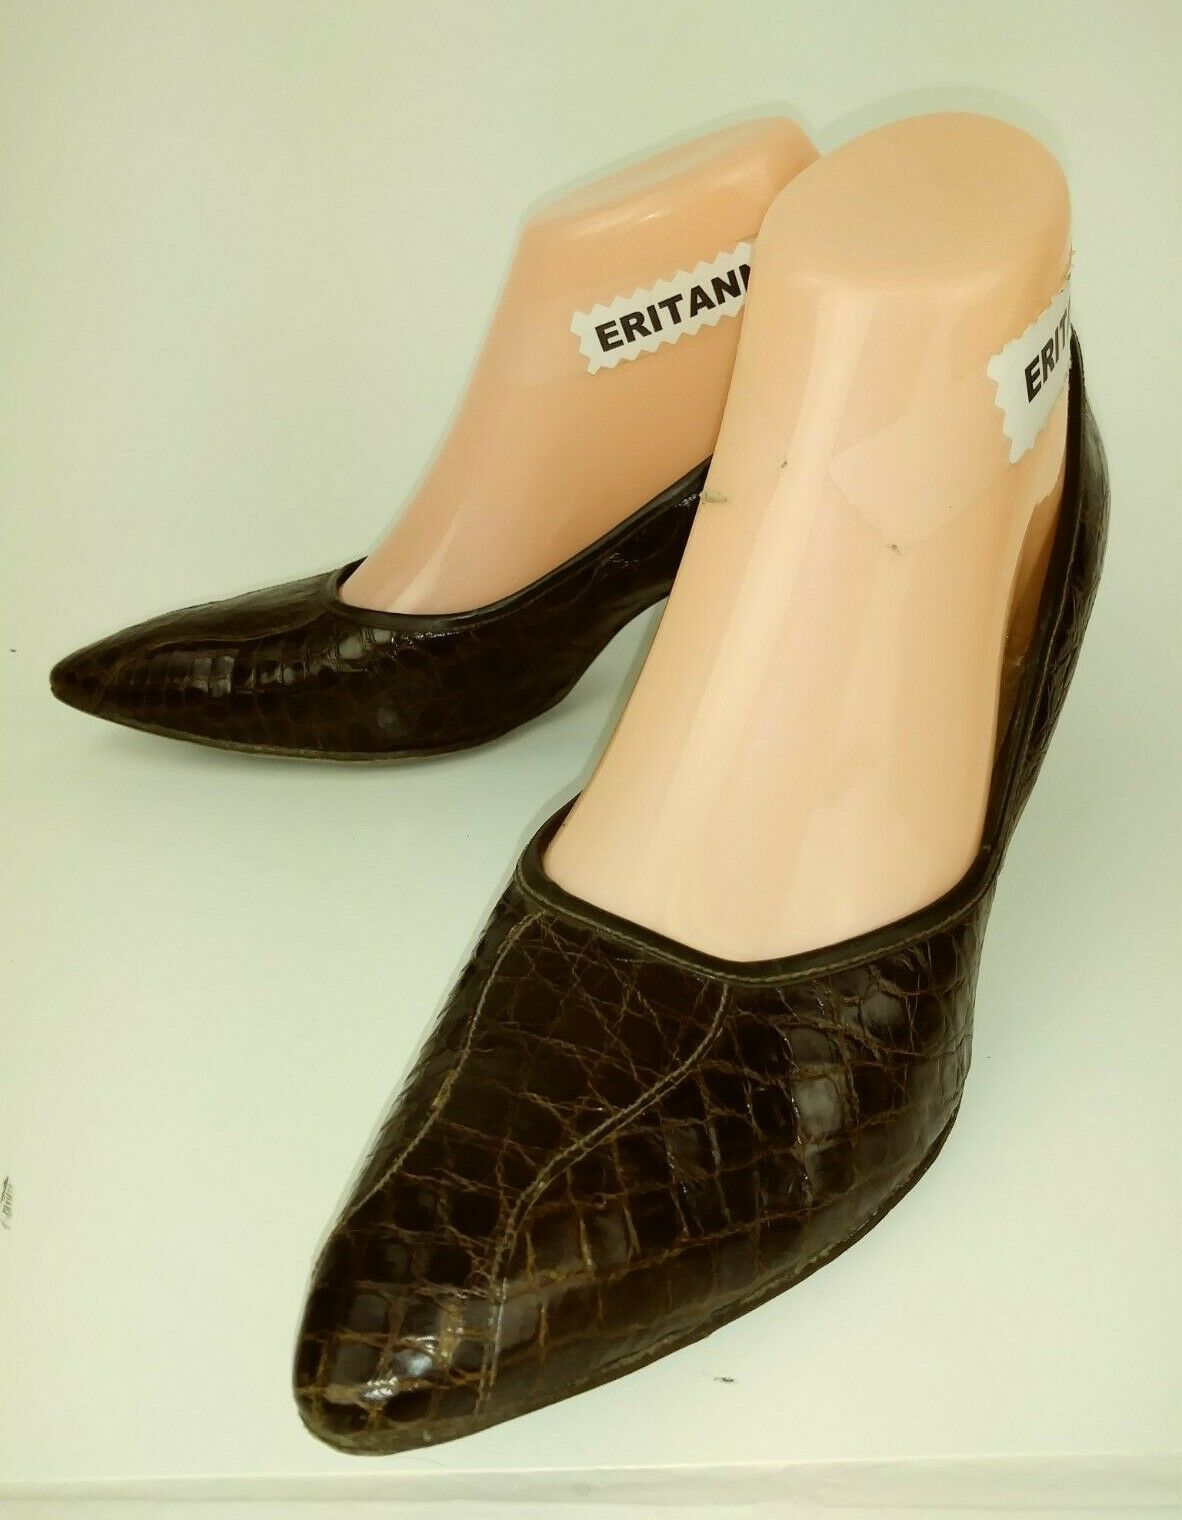 Karlee de Harmon Vintage Pinup Wos shoes Heels 7.5B Brown Alligator Leather 4537